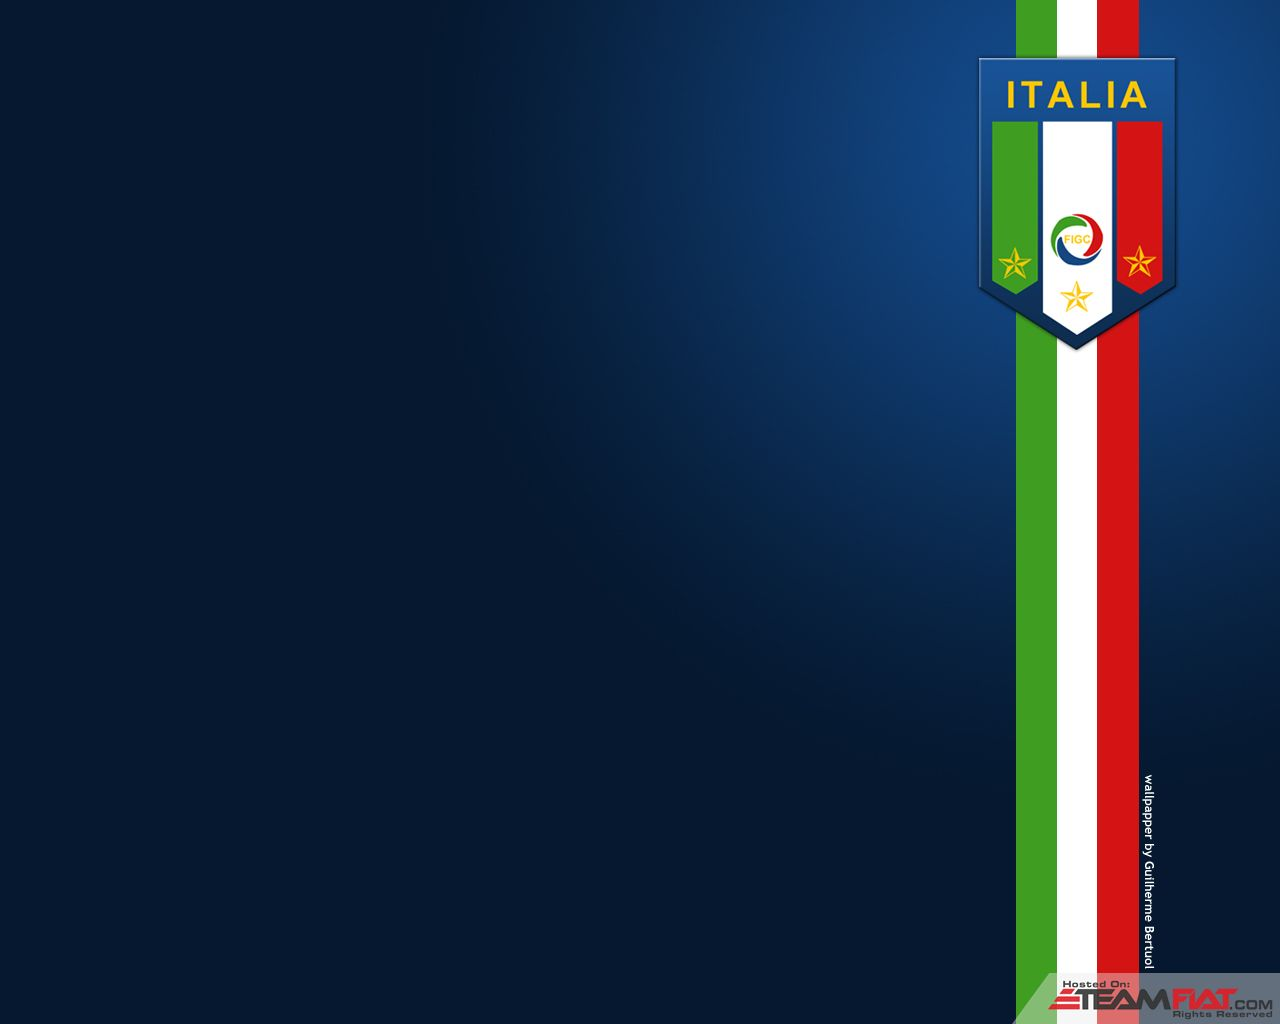 Italian-Flag-Design-in-Wallpaper-.jpg